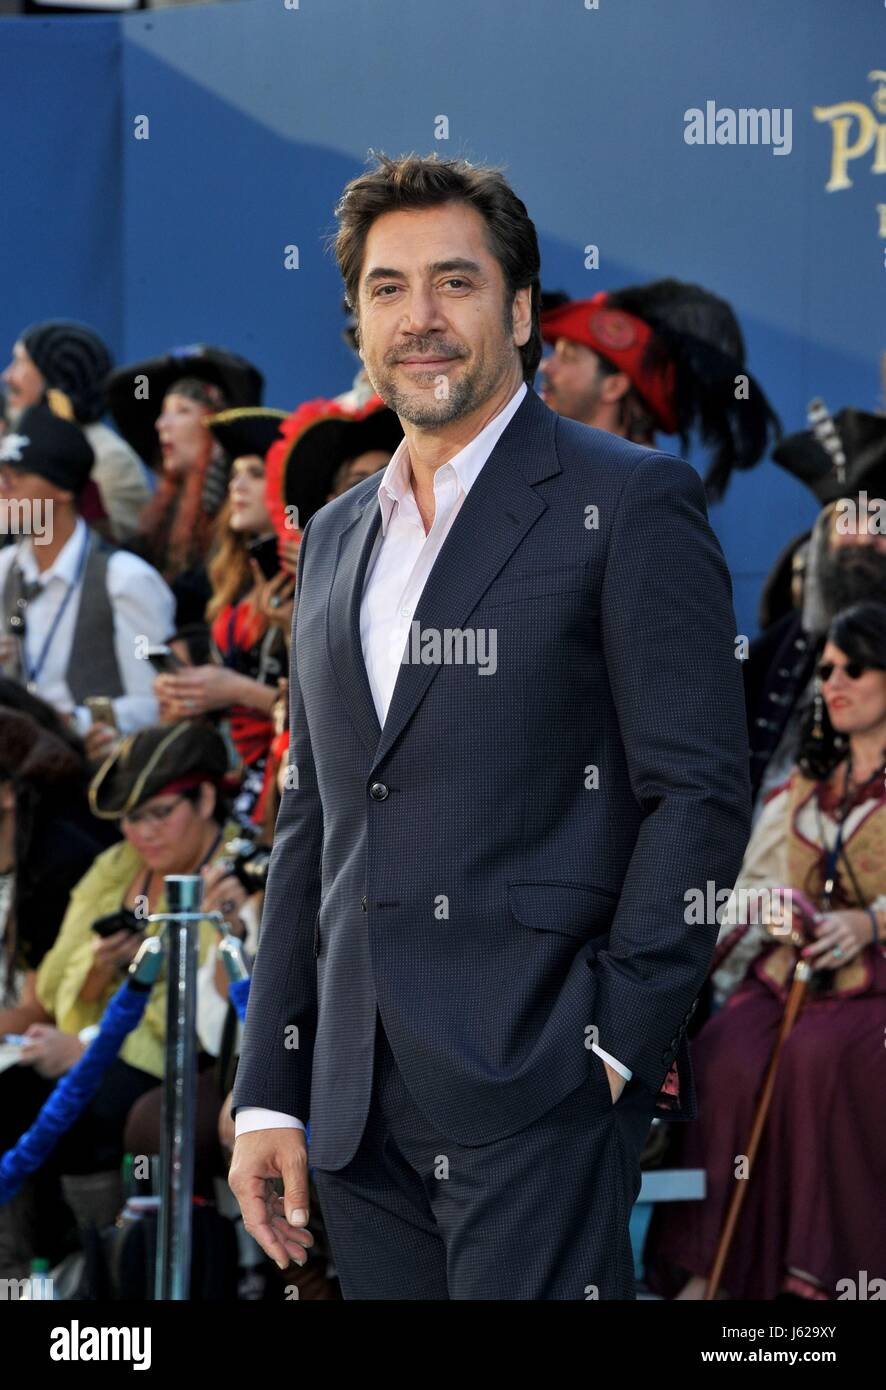 Los Angeles, CA, USA. 18th May, 2017. Javier Bardem at arrivals for PIRATES OF THE CARIBBEAN: DEAD MEN TELL NO TALES - Stock Image